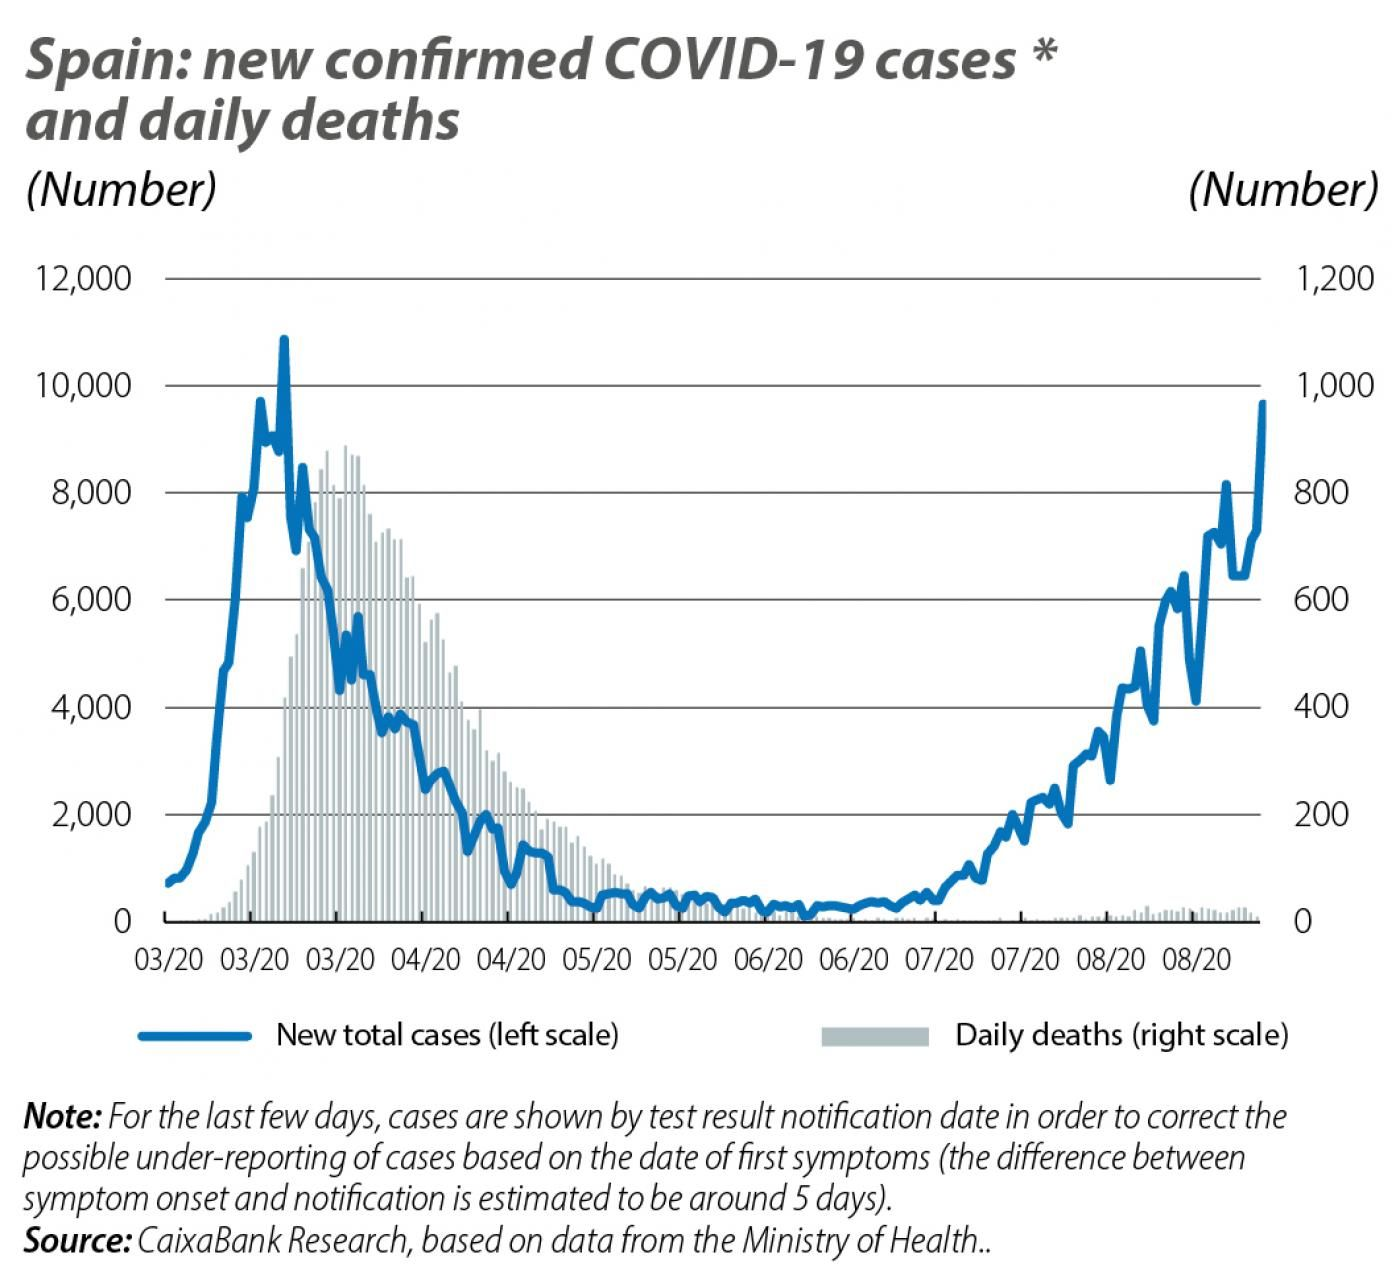 Spain: new confirmed COVID-19 cases and daily deaths